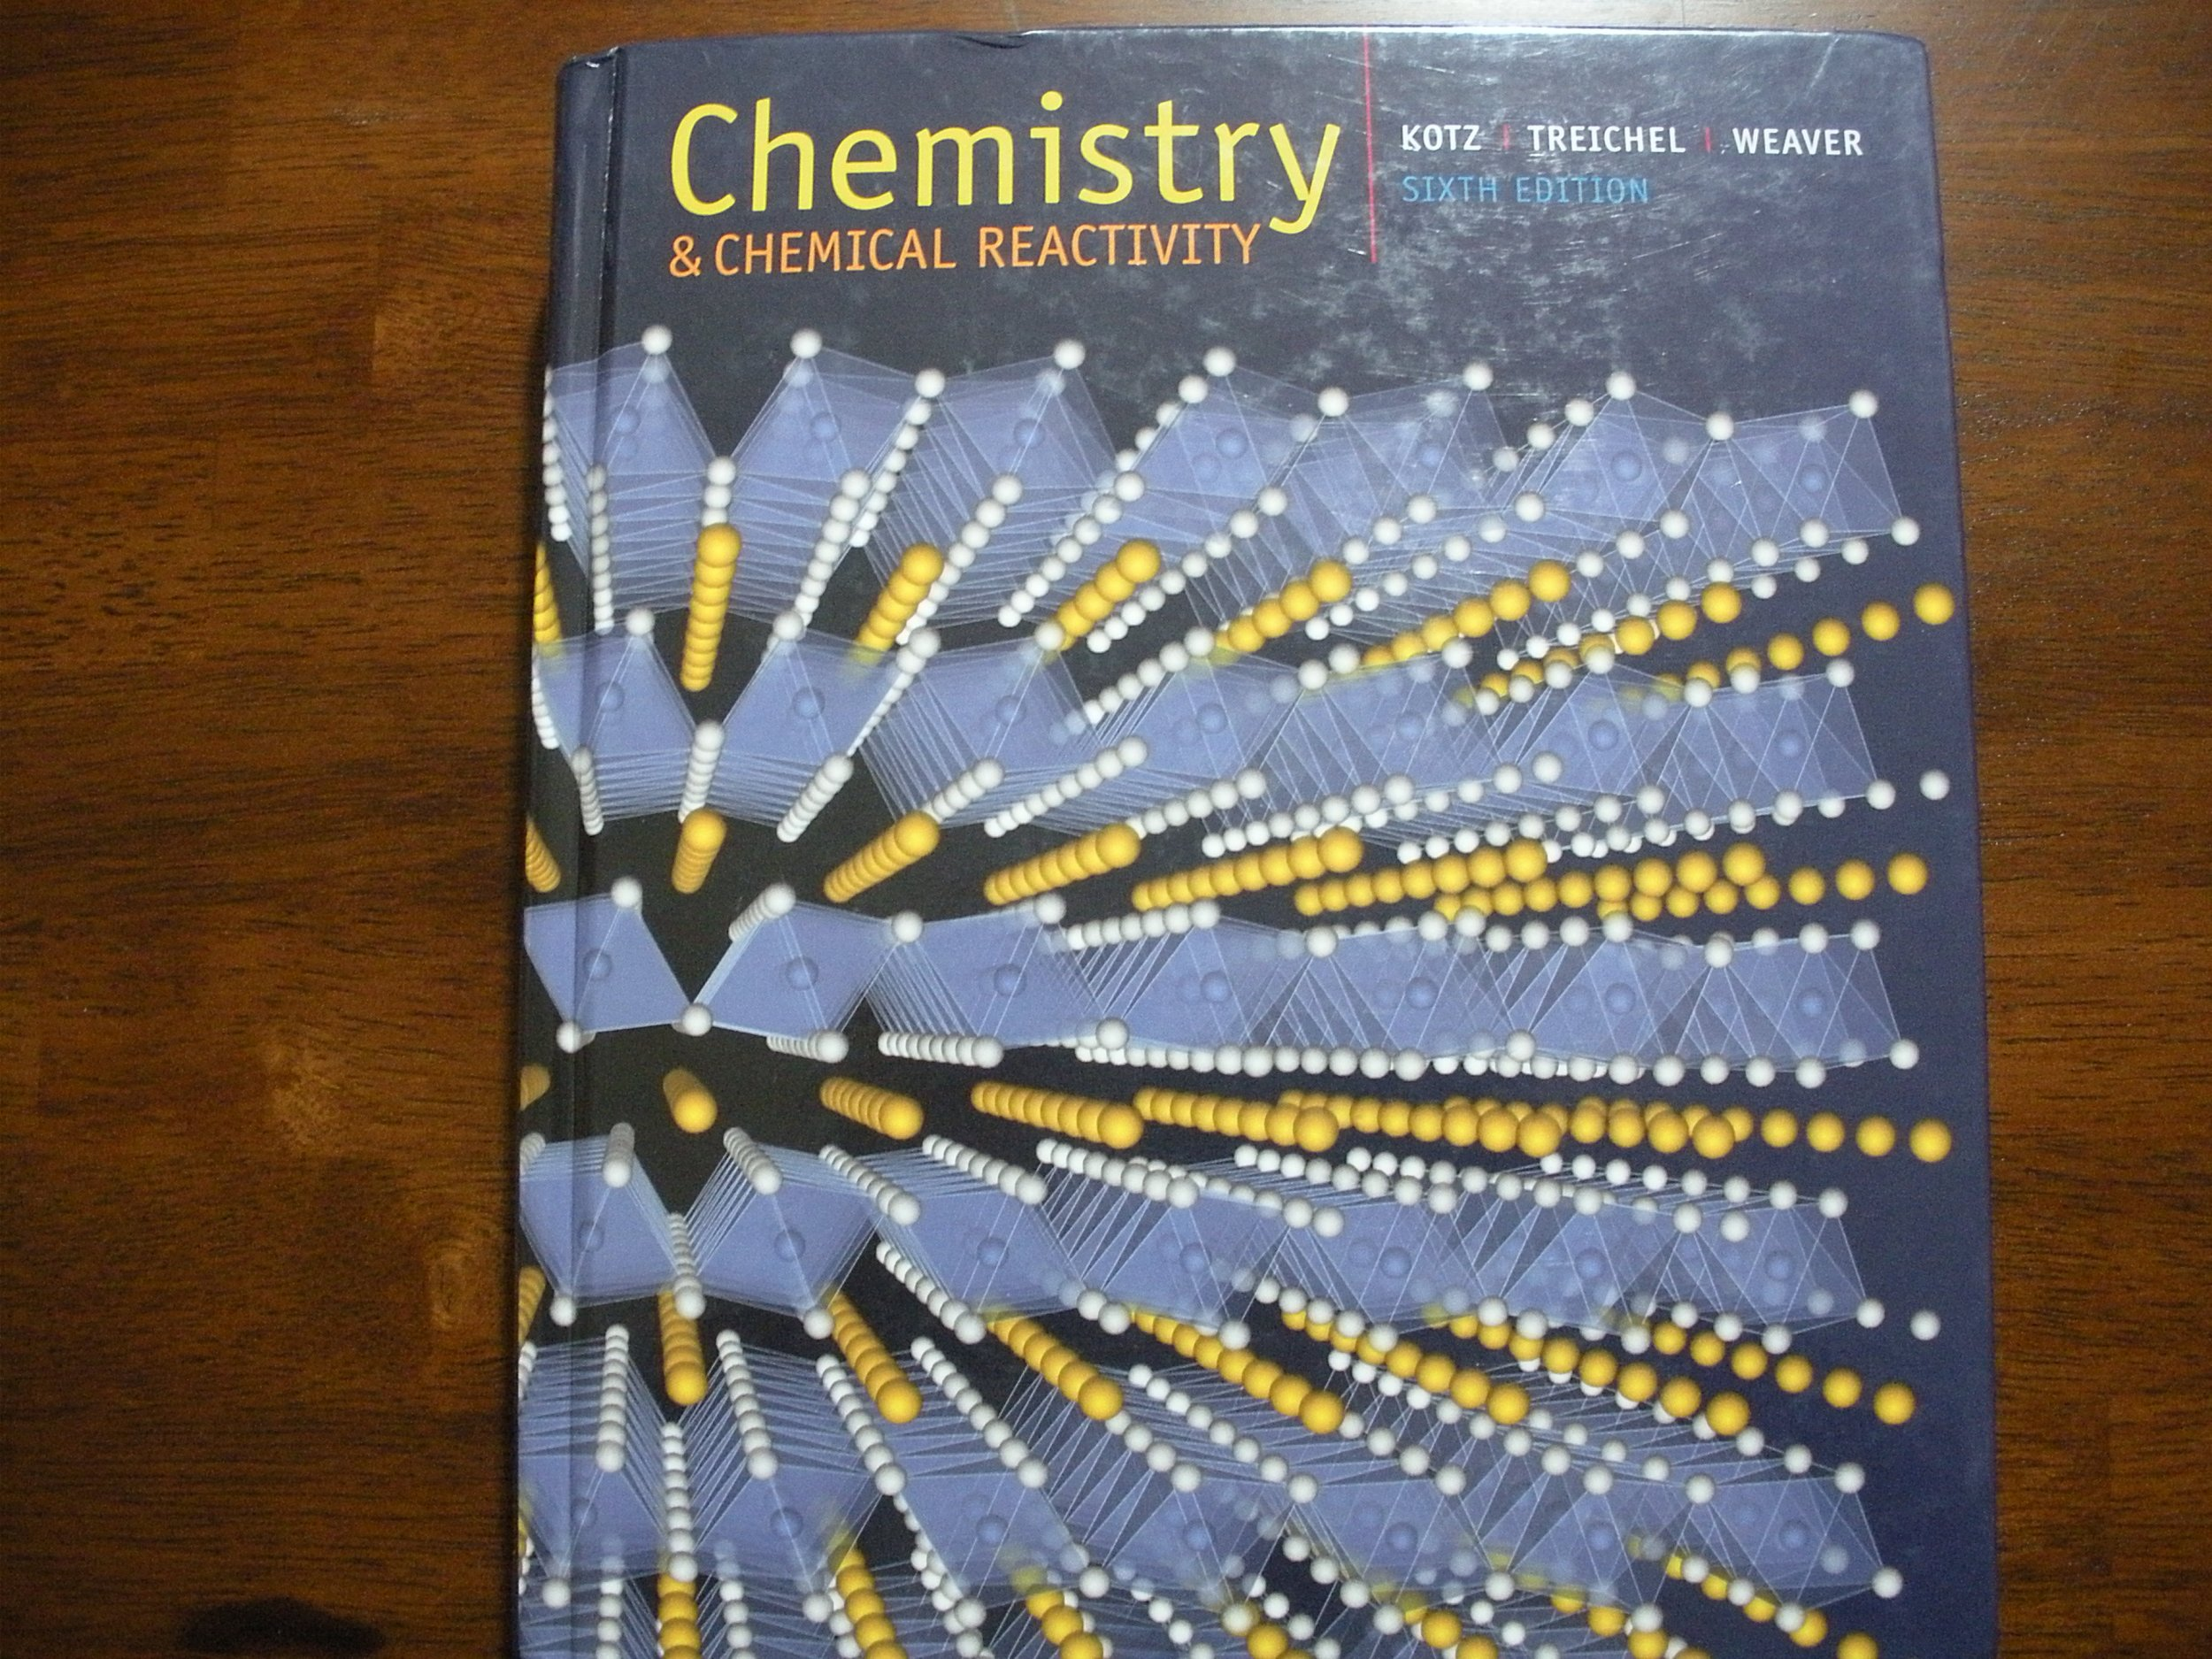 Chemistry & Chemical Reactivity with Chemistynow 2.0 Online Code & Chemistrynow Cd-rom 6th Edition 2006 pdf